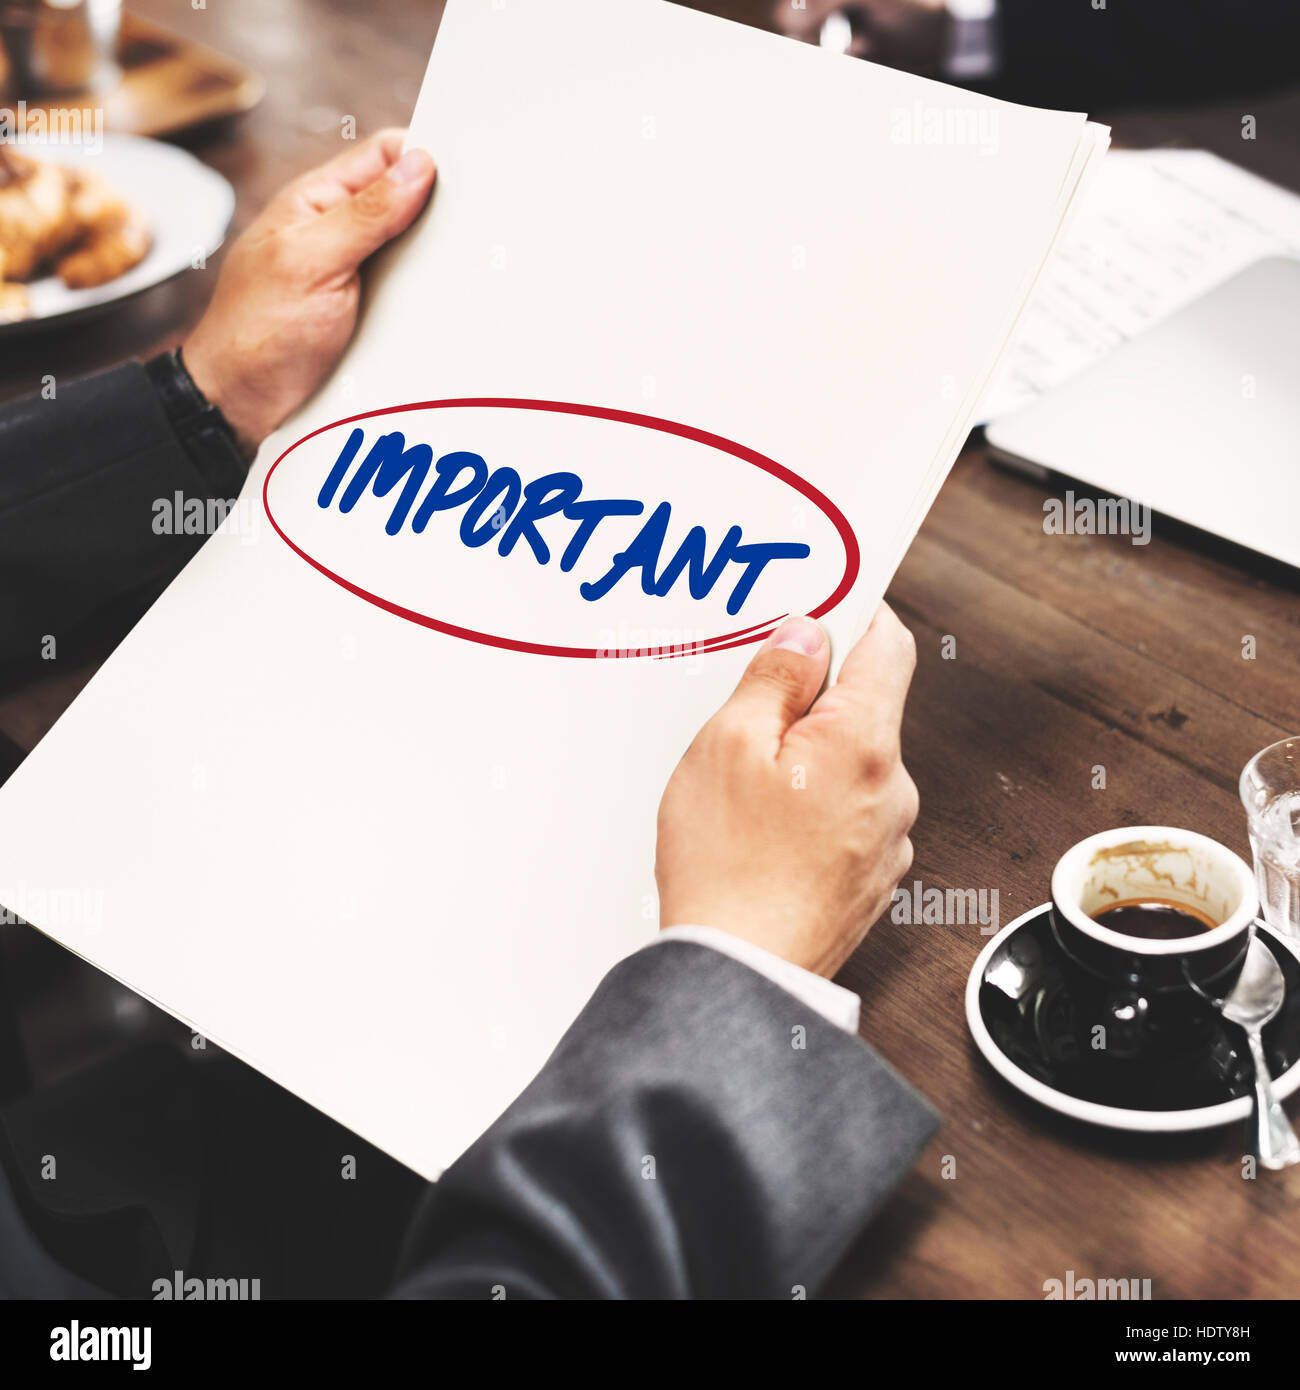 Important Prioritize Urgent Focus Issues Work Concept - Stock Image